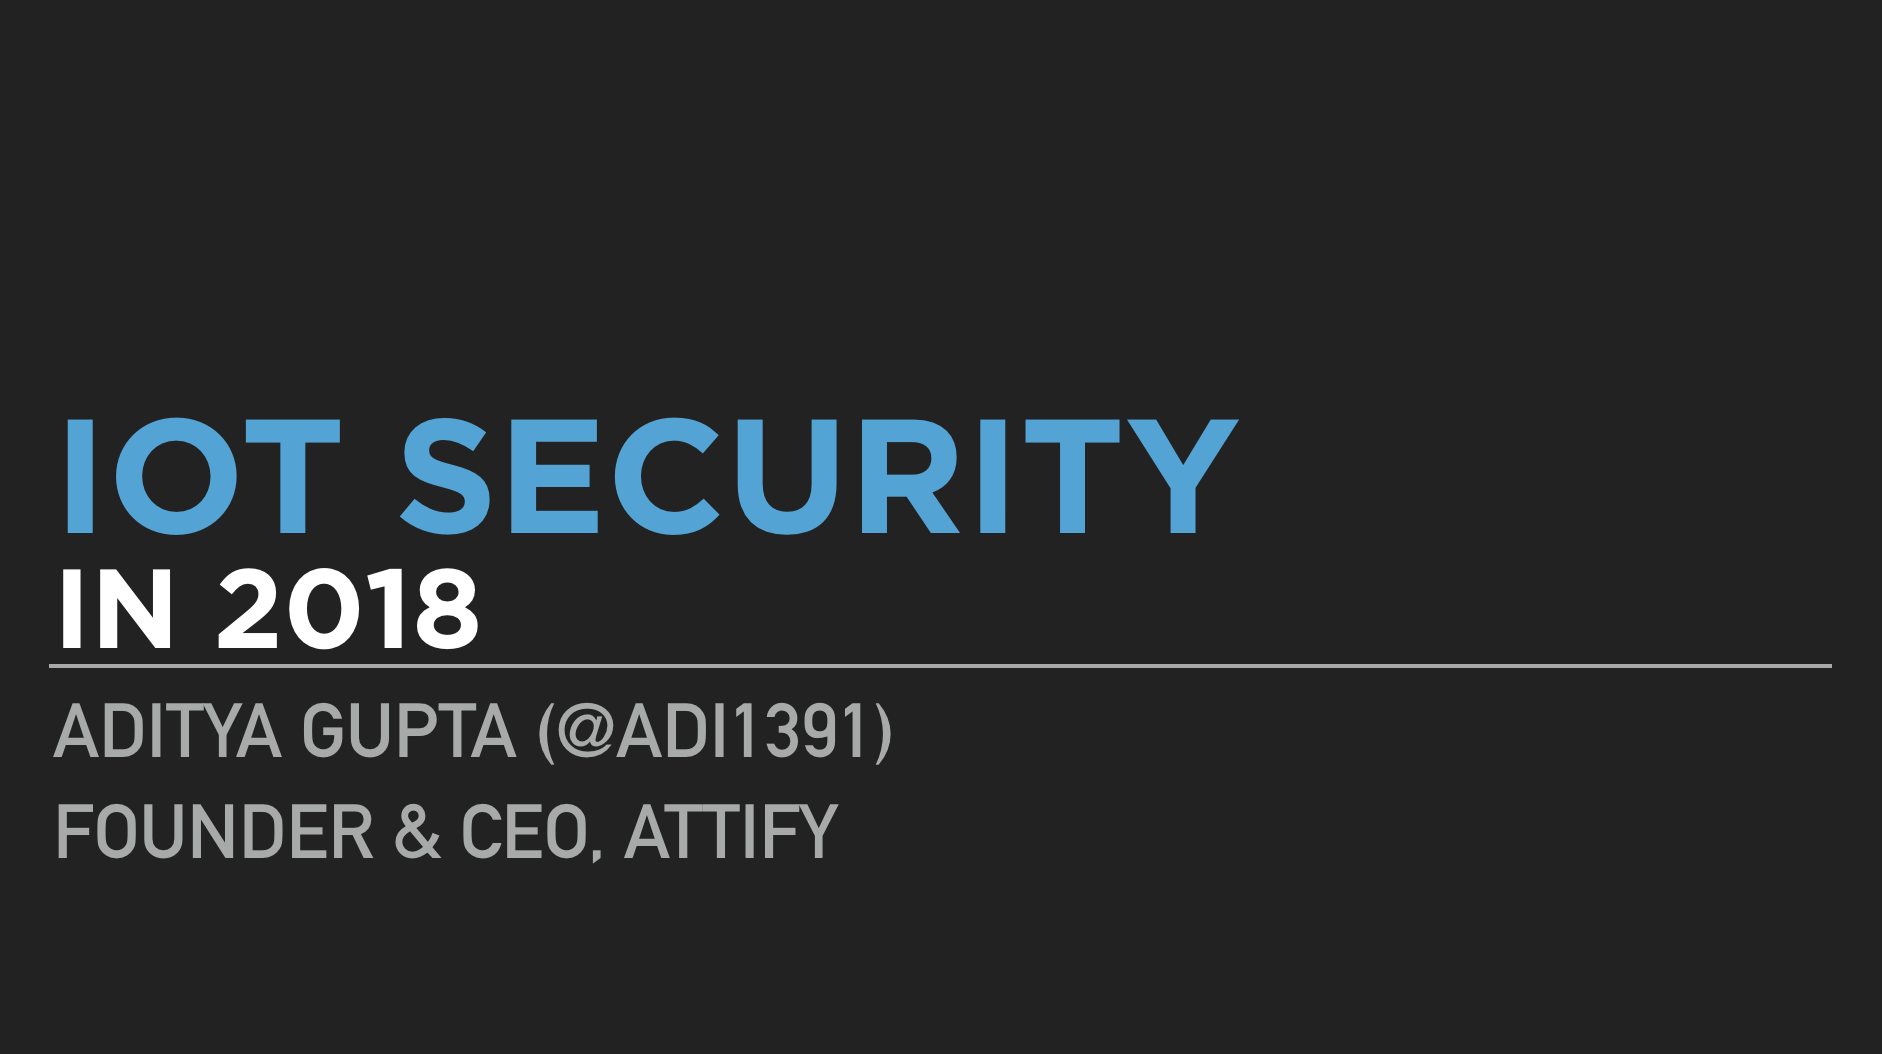 IoT Security in 2018 - Attify